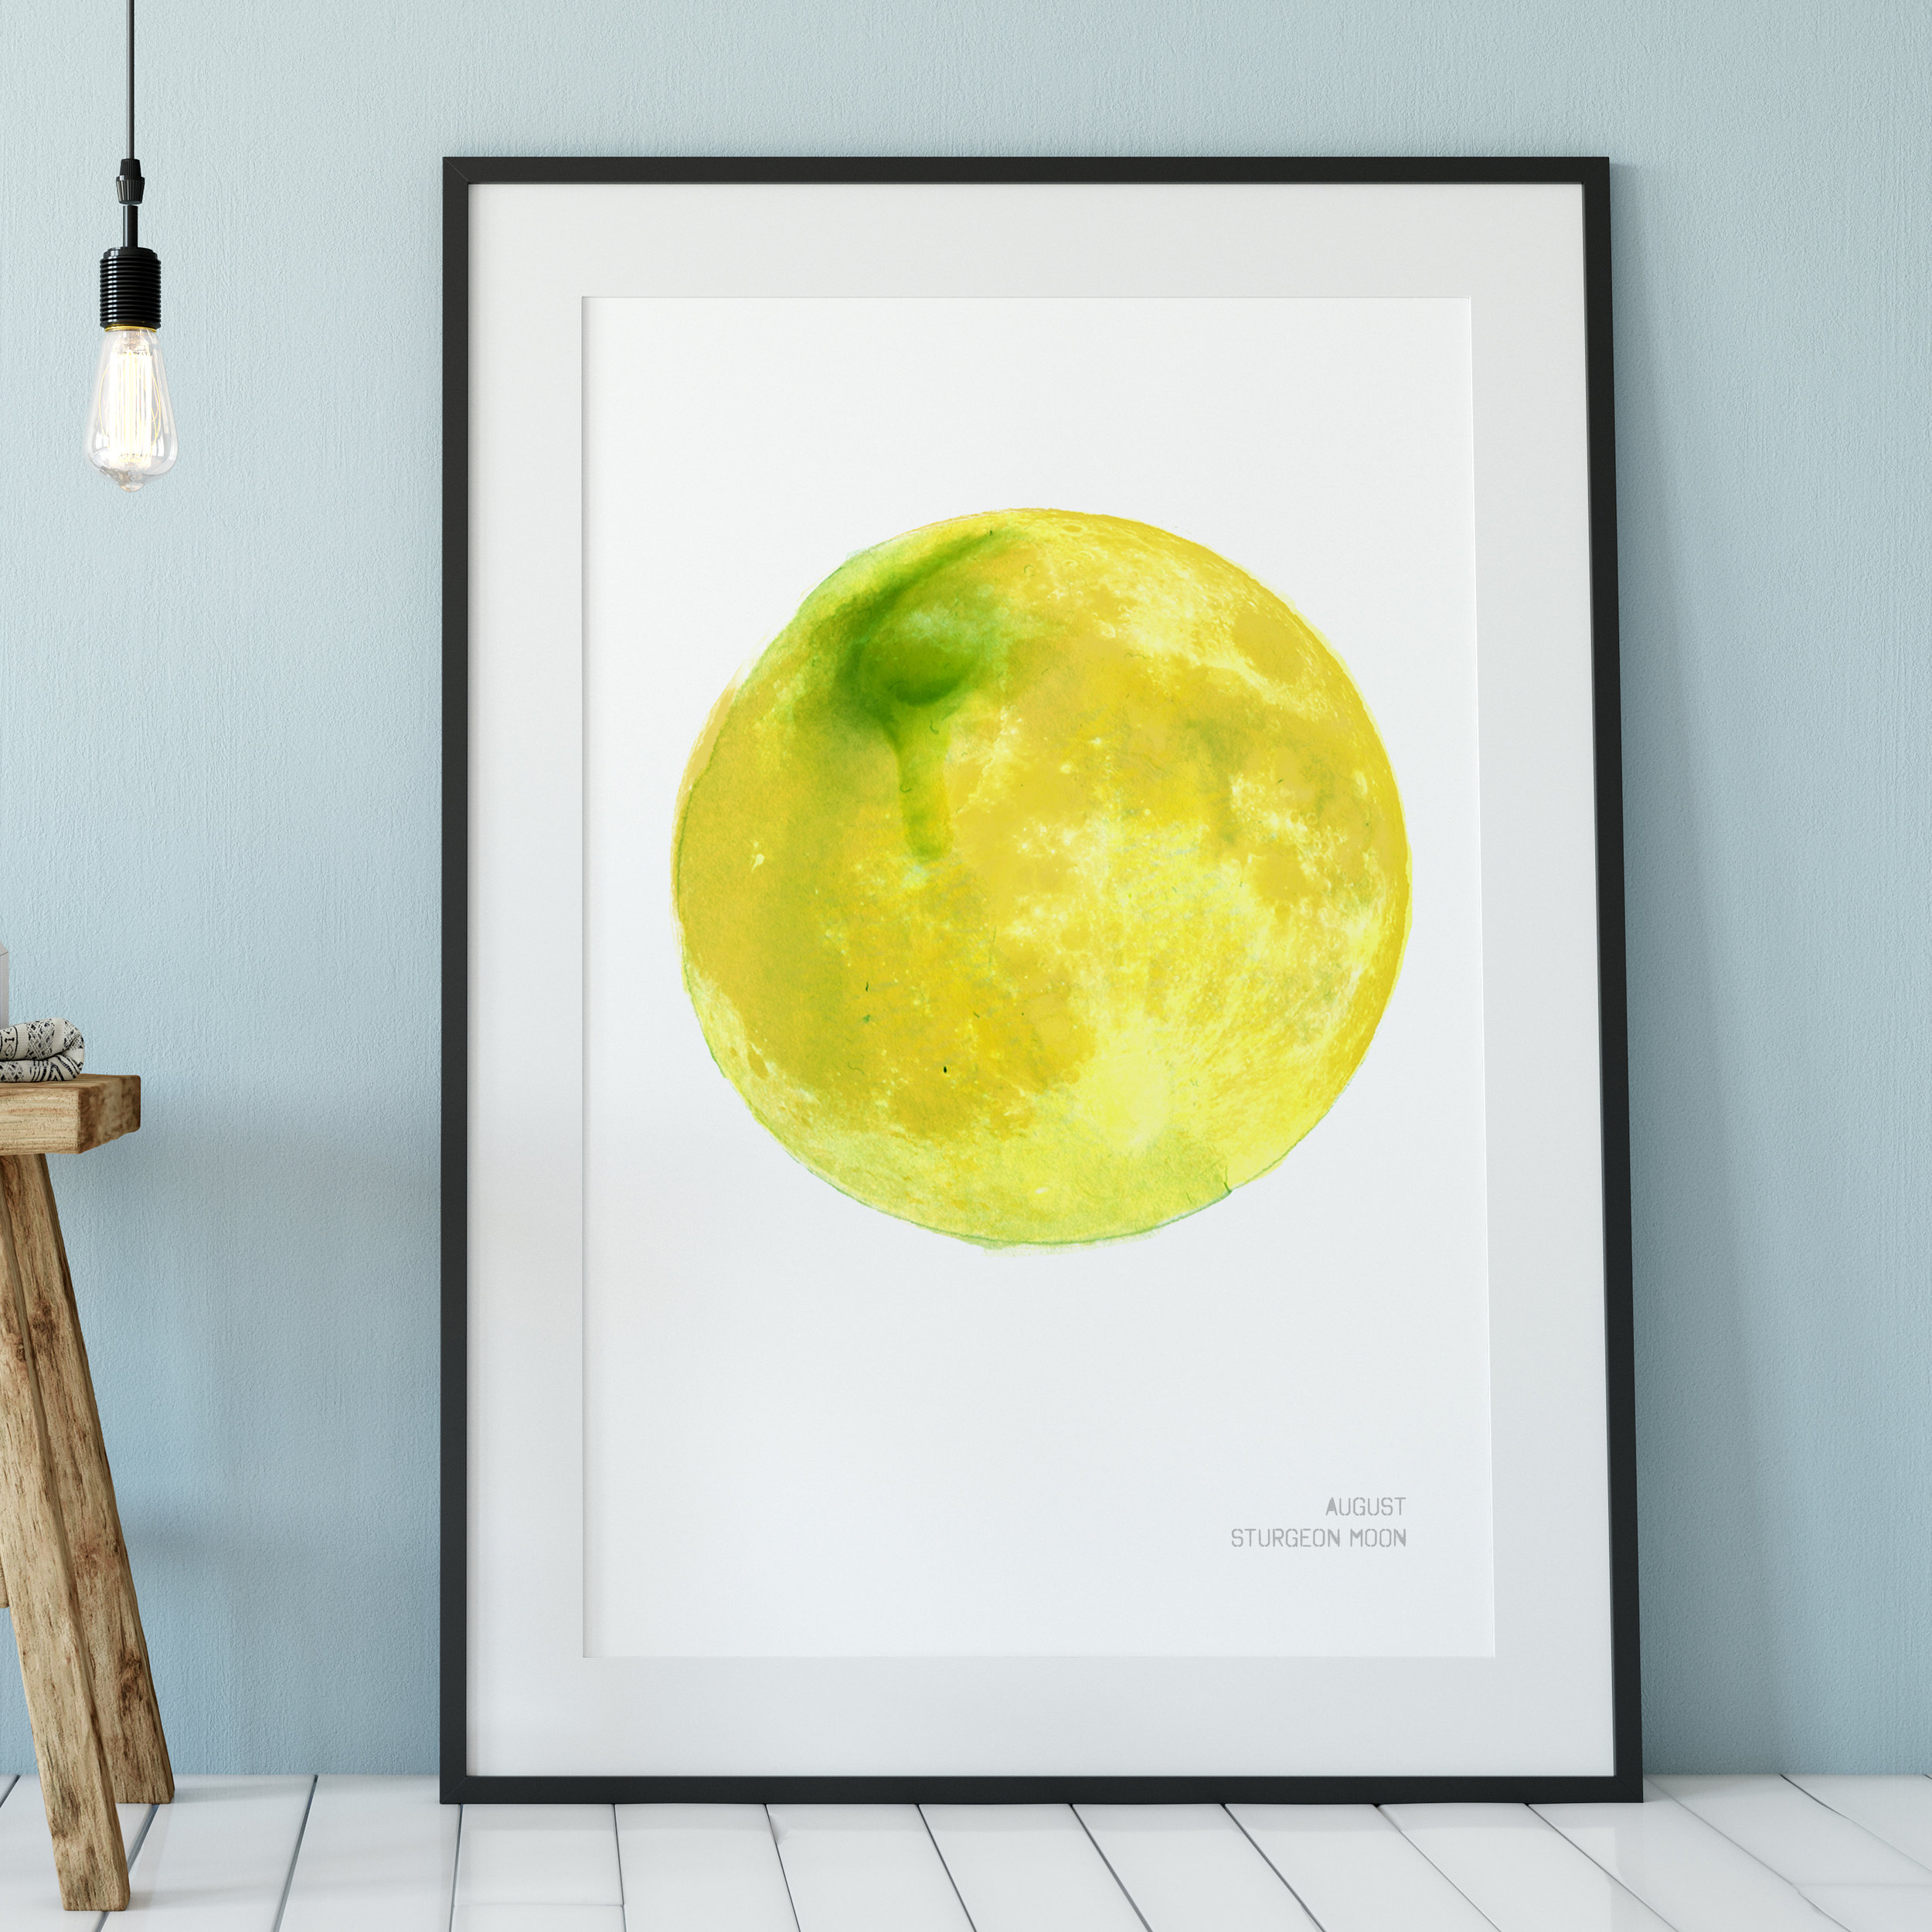 August Sturgeon Moon Art Print.jpg